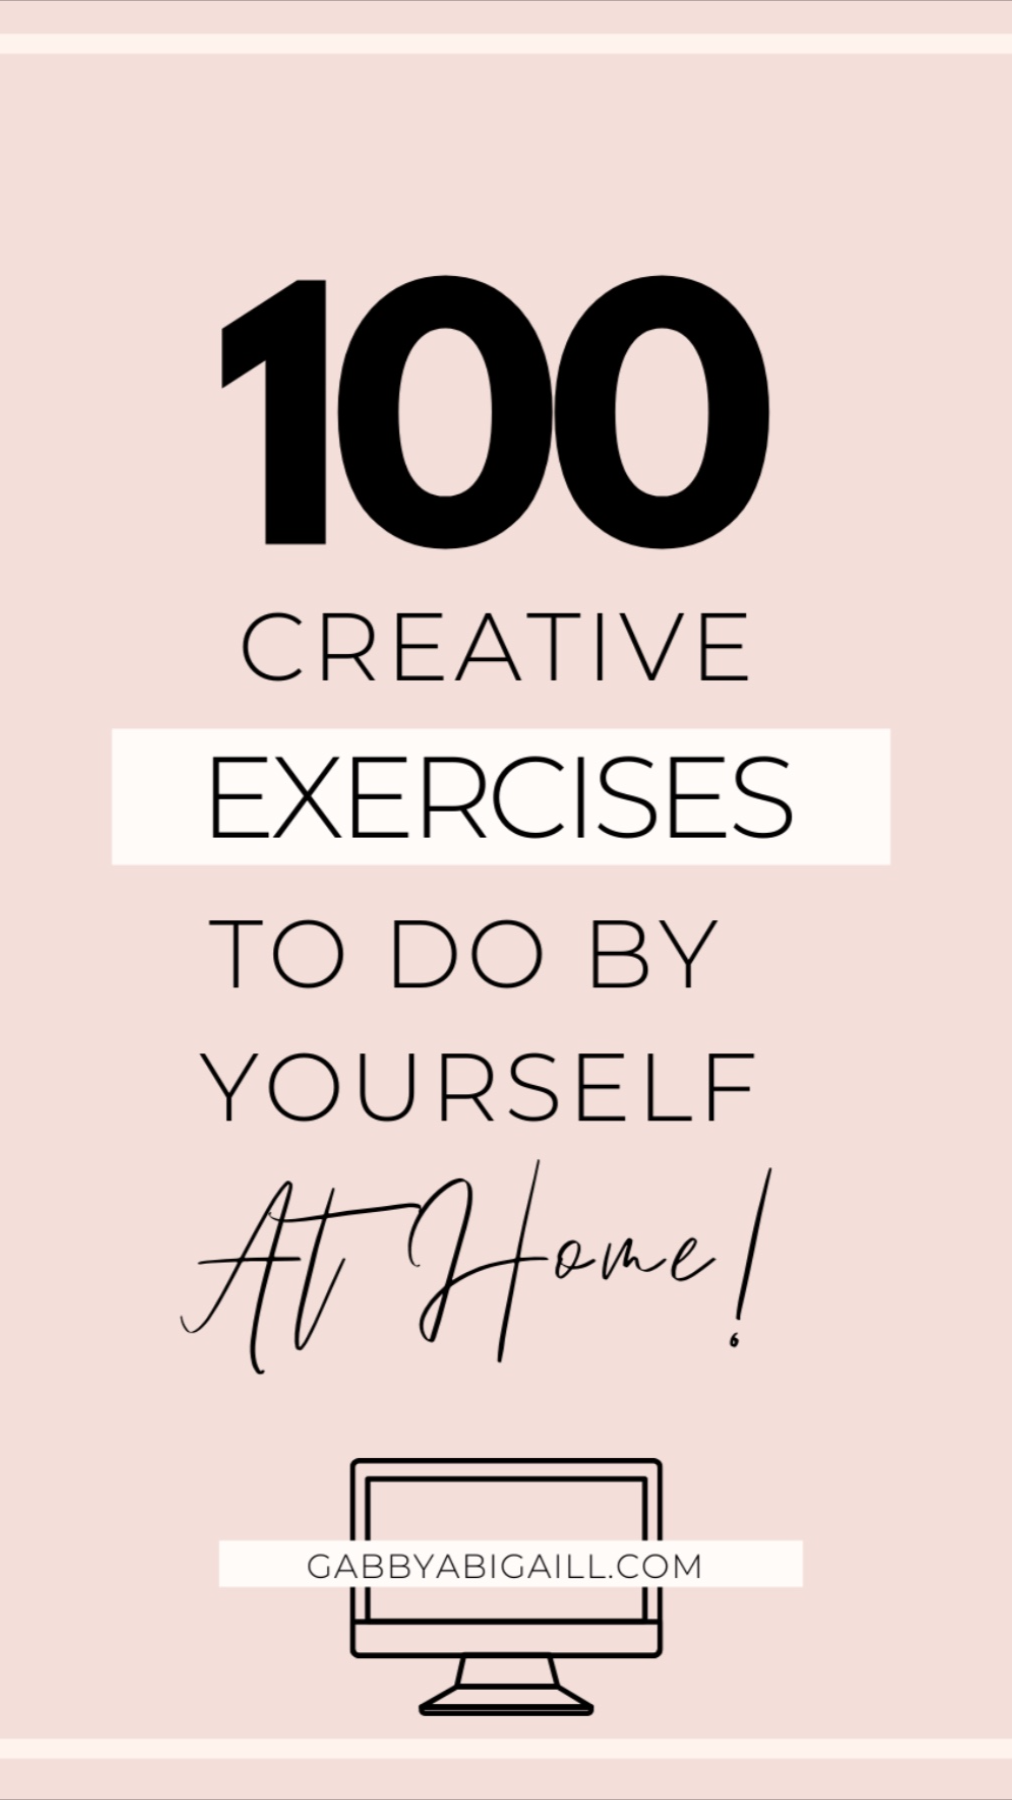 100 Creative Exercises To Do By Yourself At Home